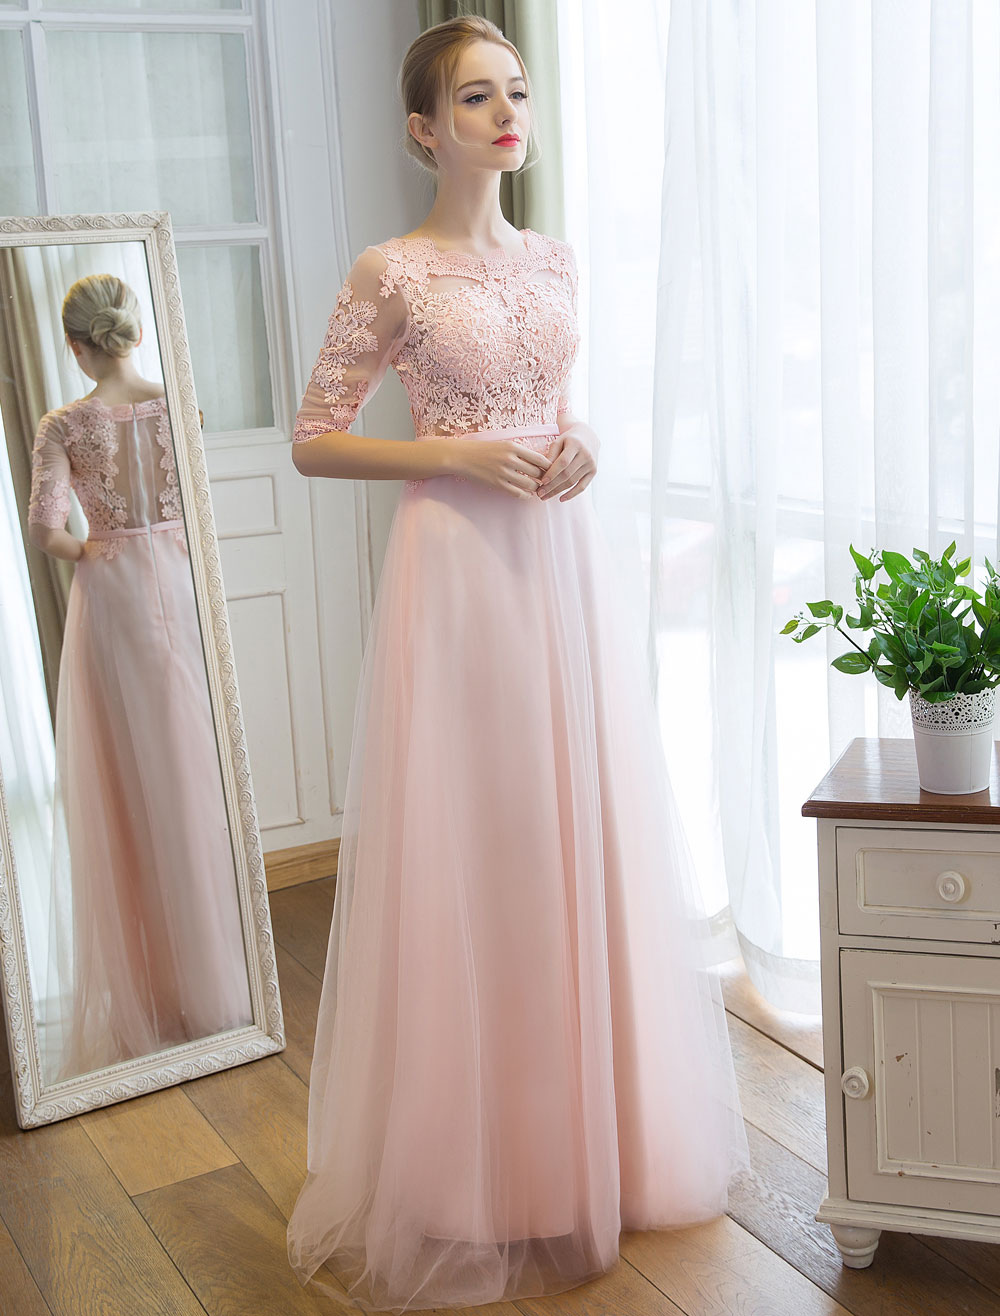 Prom Dresses Long Soft Pink Half Sleeve Lace Tulle Formal Evening Lace Applique Maxi Party Dress